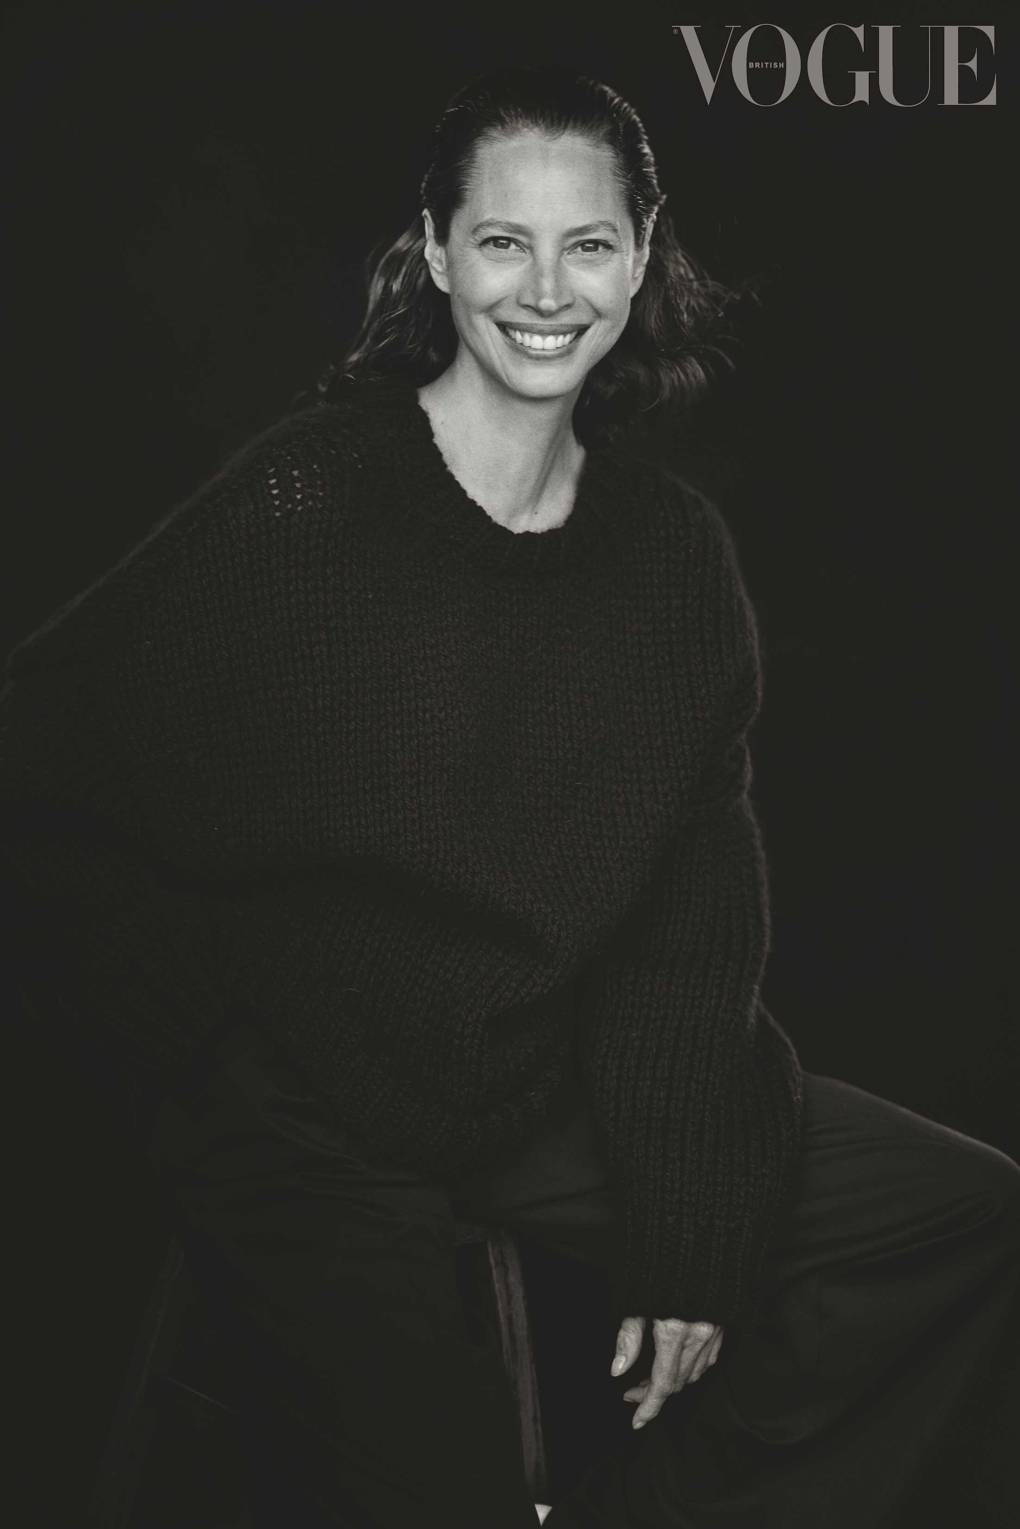 Christy Turlington Burns, founder of Every Mother Counts and model